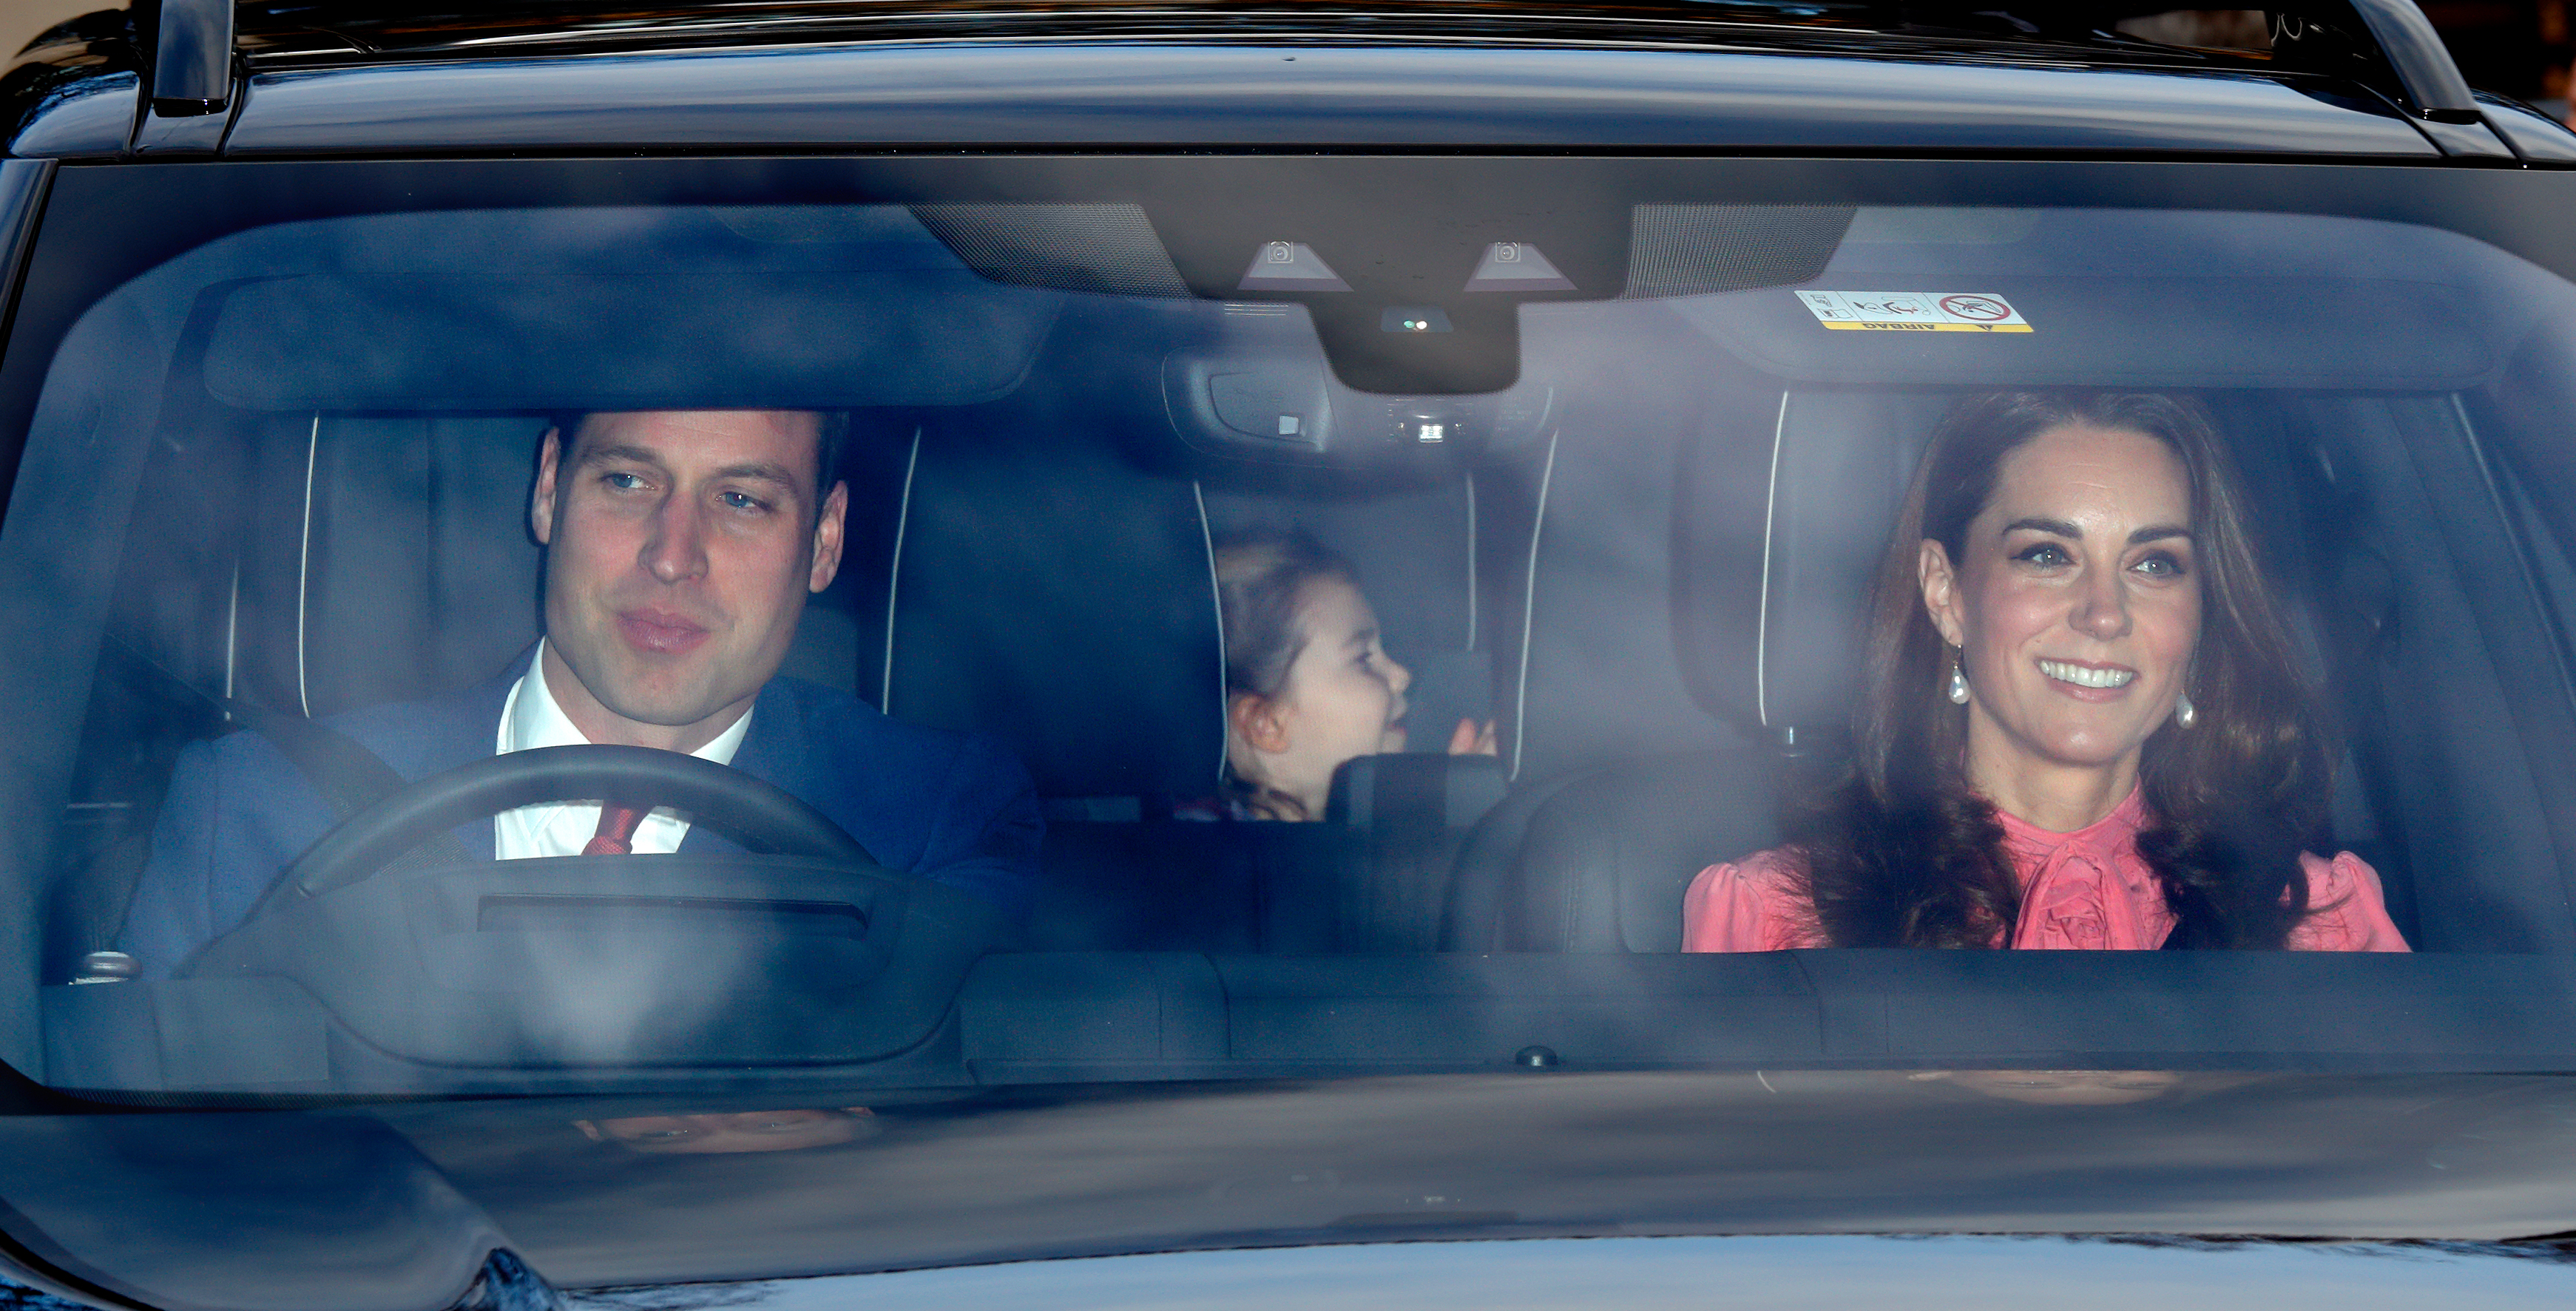 Prince William driving his family, Kate Middleton and Princess Charlotte.